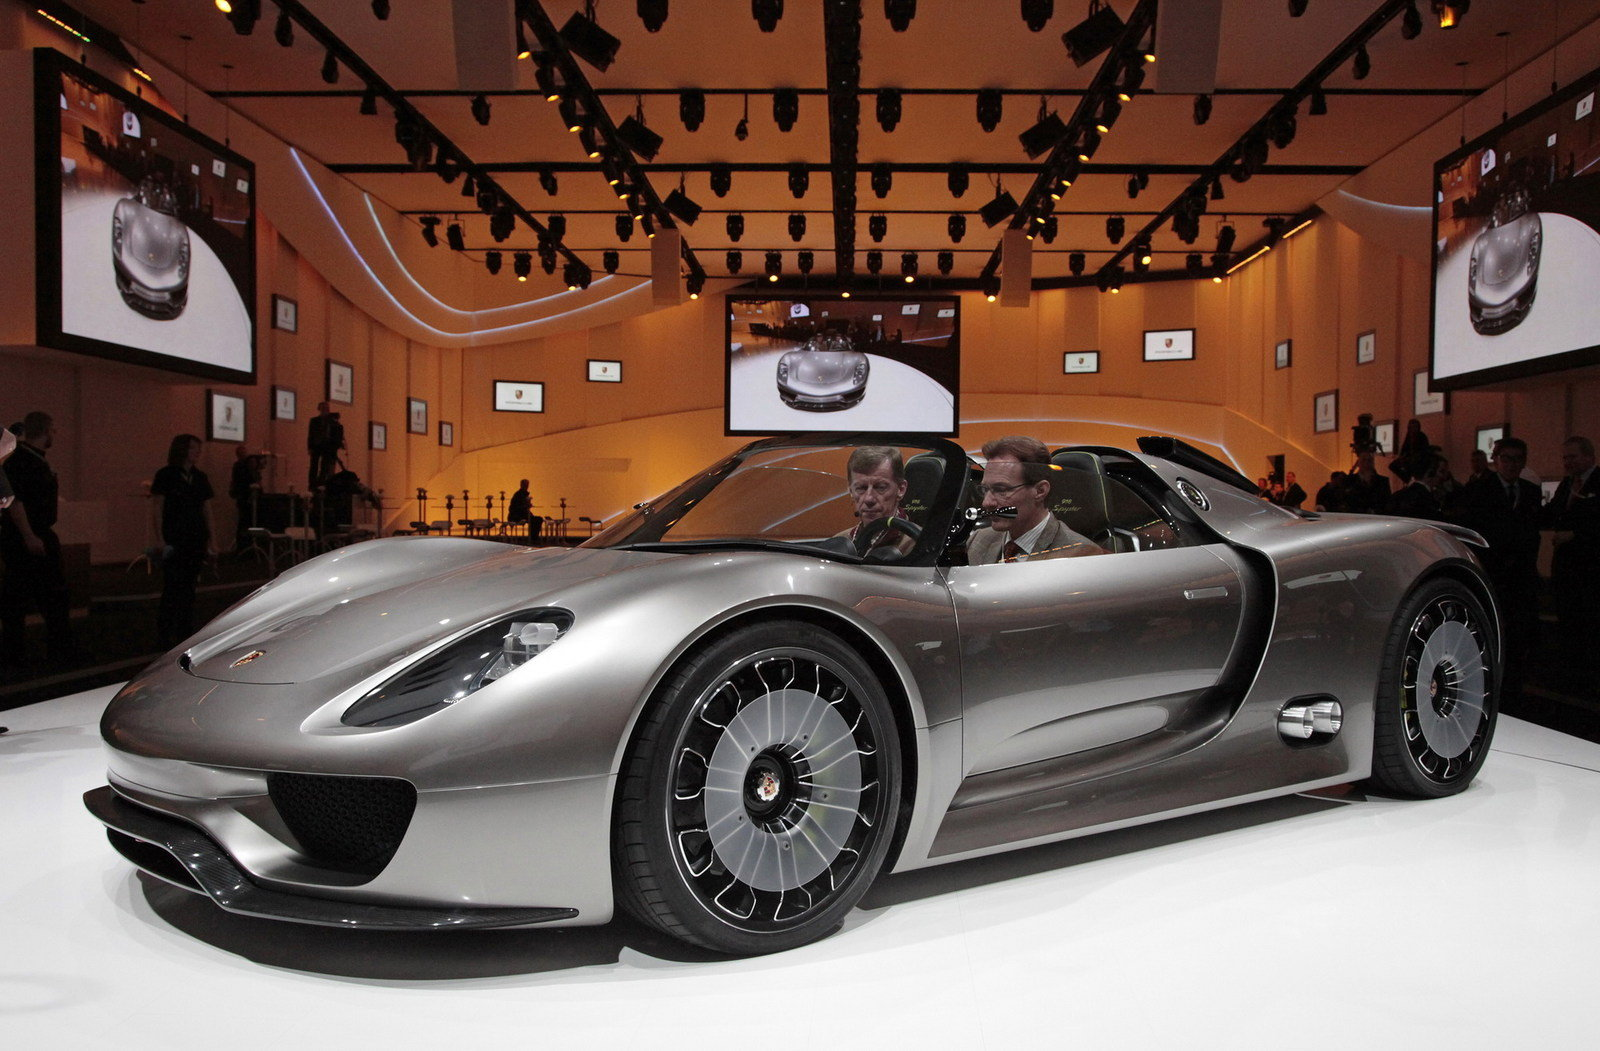 2010 porsche 918 spyder concept picture 350776 car. Black Bedroom Furniture Sets. Home Design Ideas